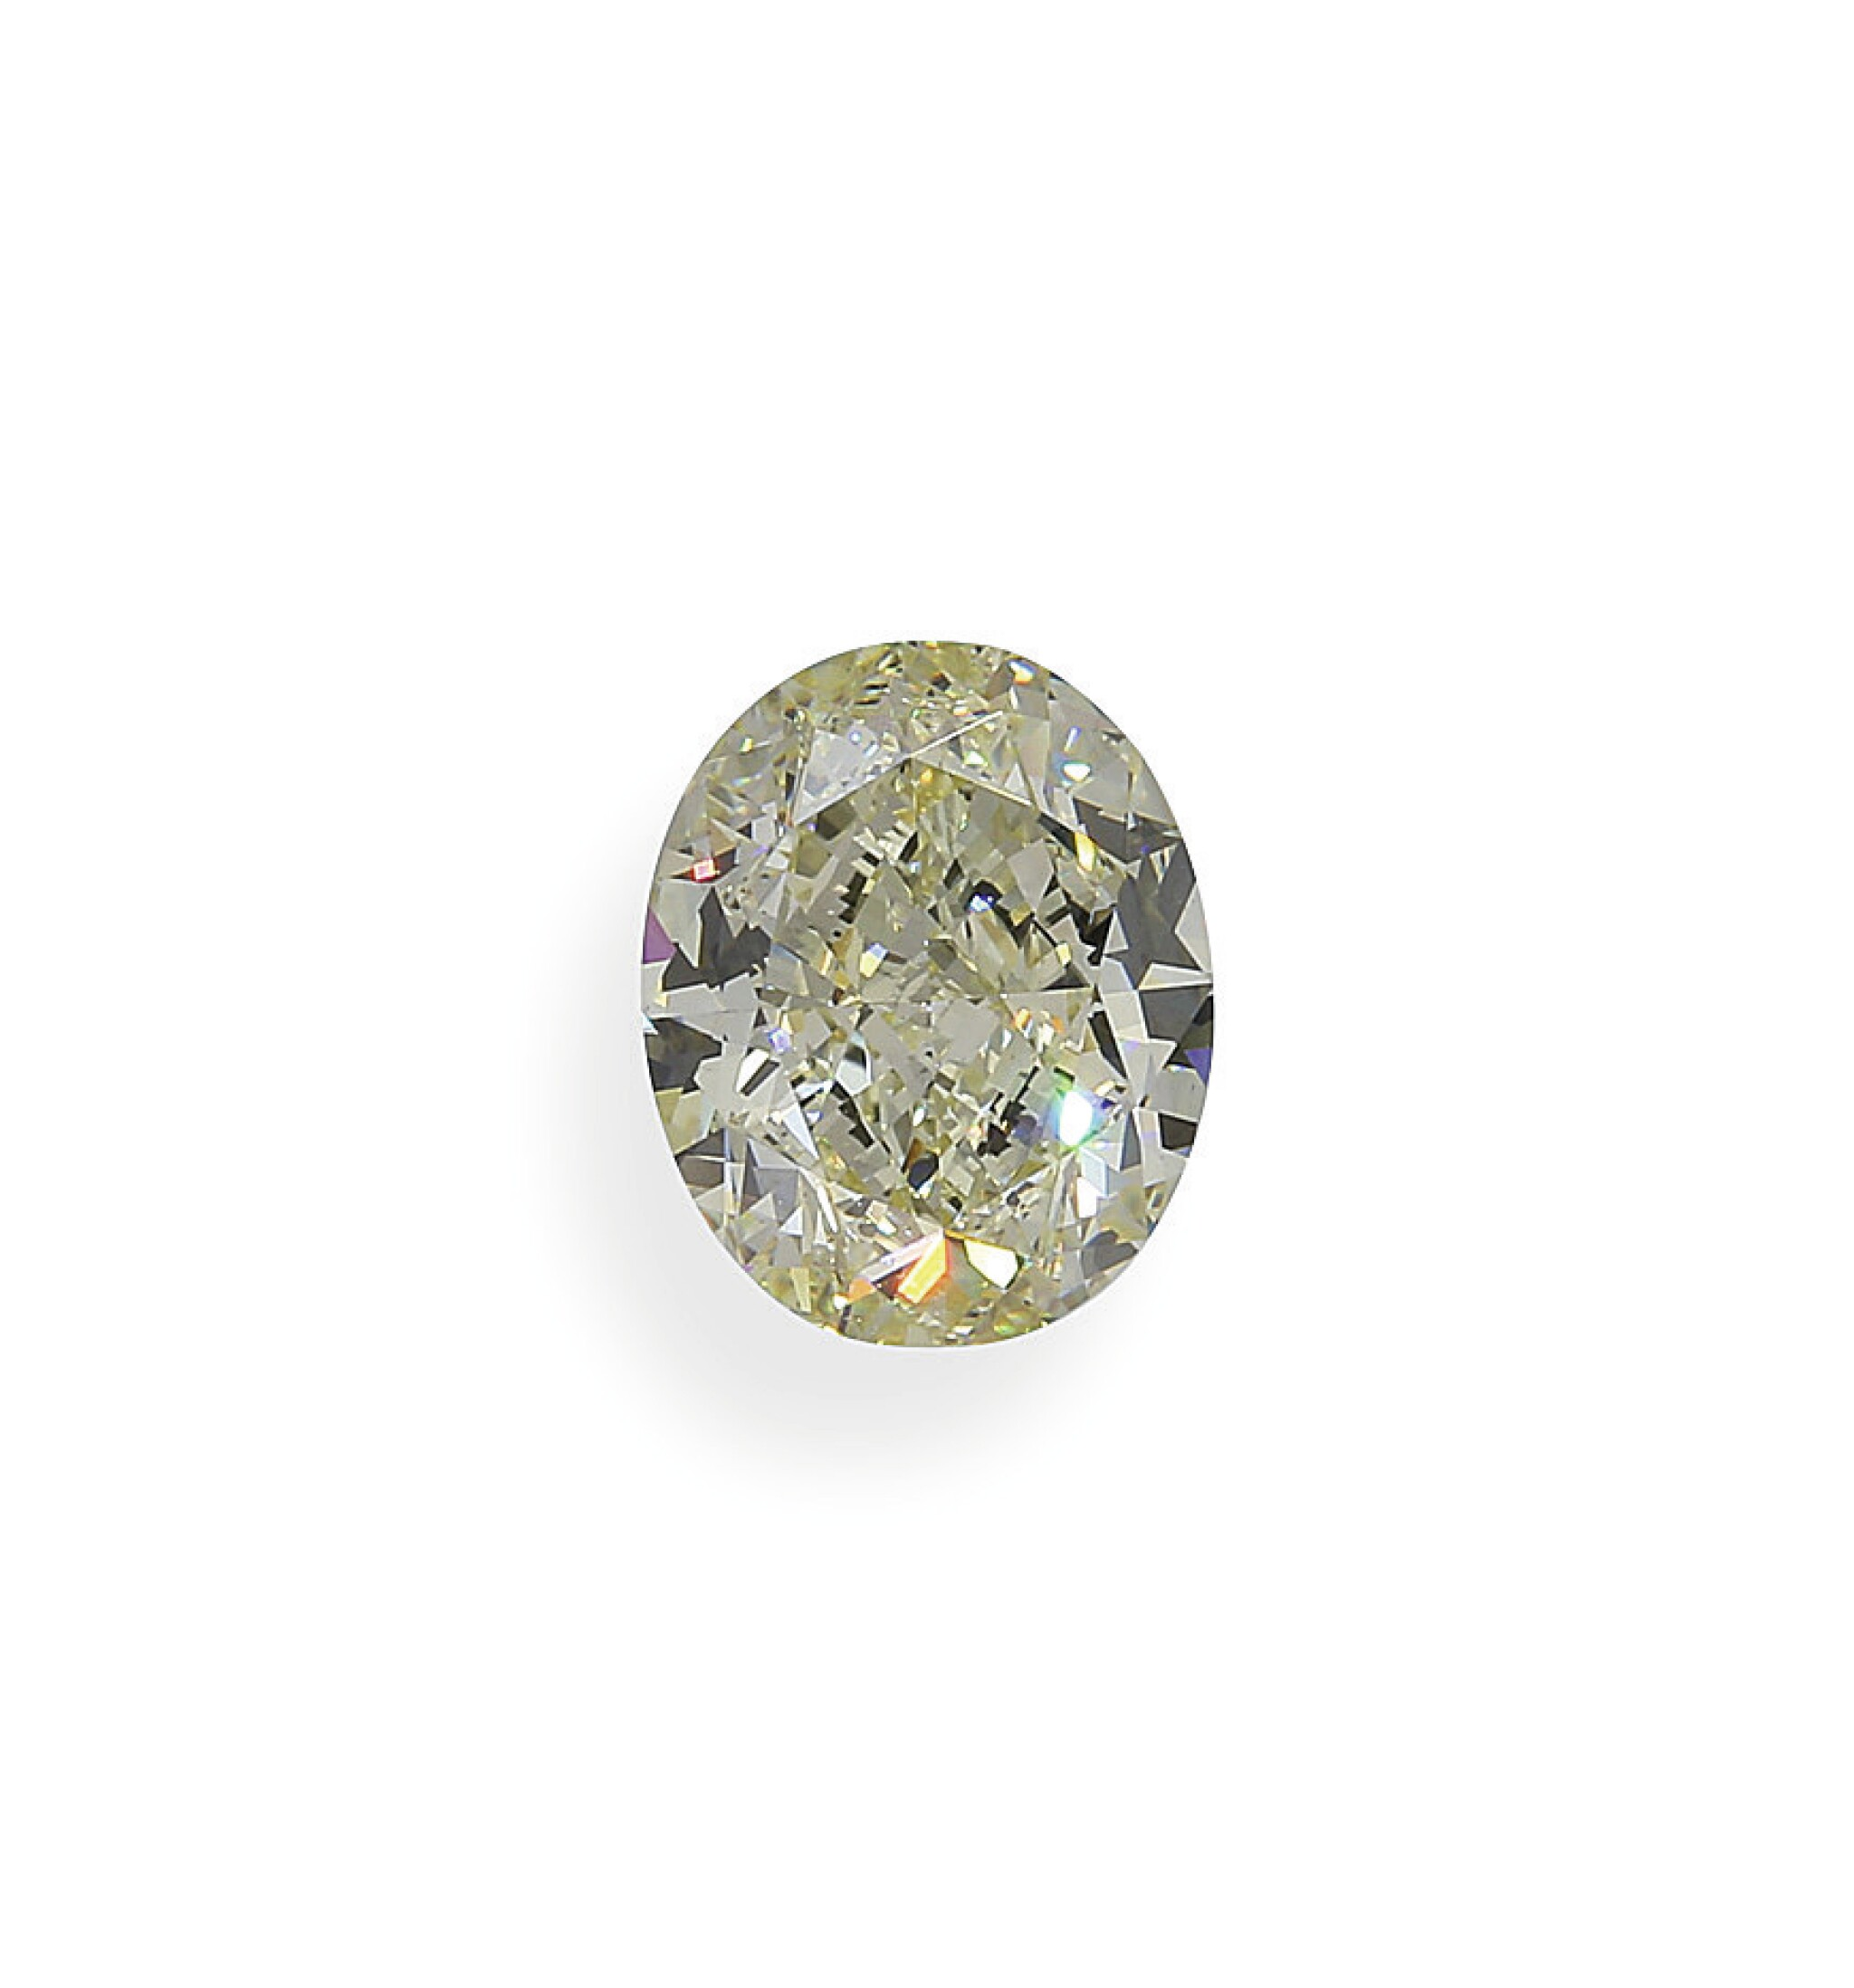 View full screen - View 1 of Lot 10. A 3.95 Carat Oval-Shaped Diamond, Y-Z Color, VS1 Clarity.